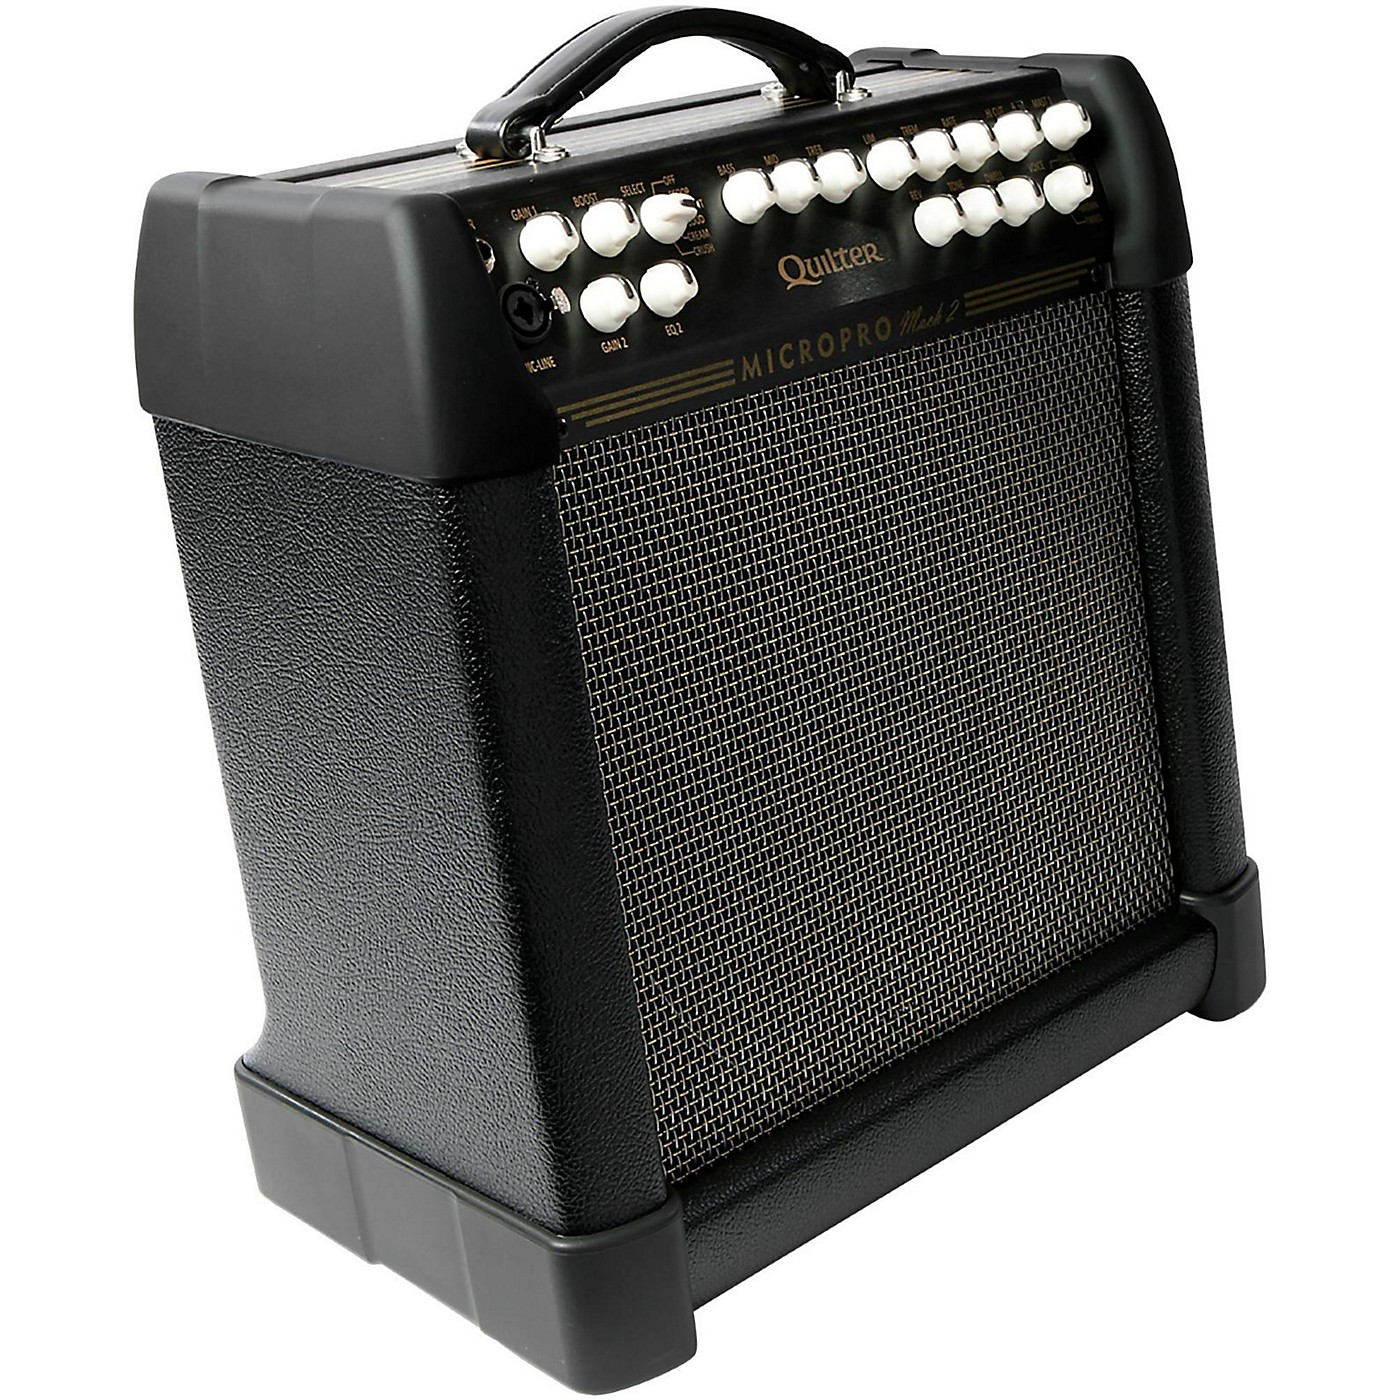 Quilter Labs Mach2-COMBO-12 Micro Pro 200 Mach 2 12 200W 1x12 Guitar Combo Amplifier thumbnail